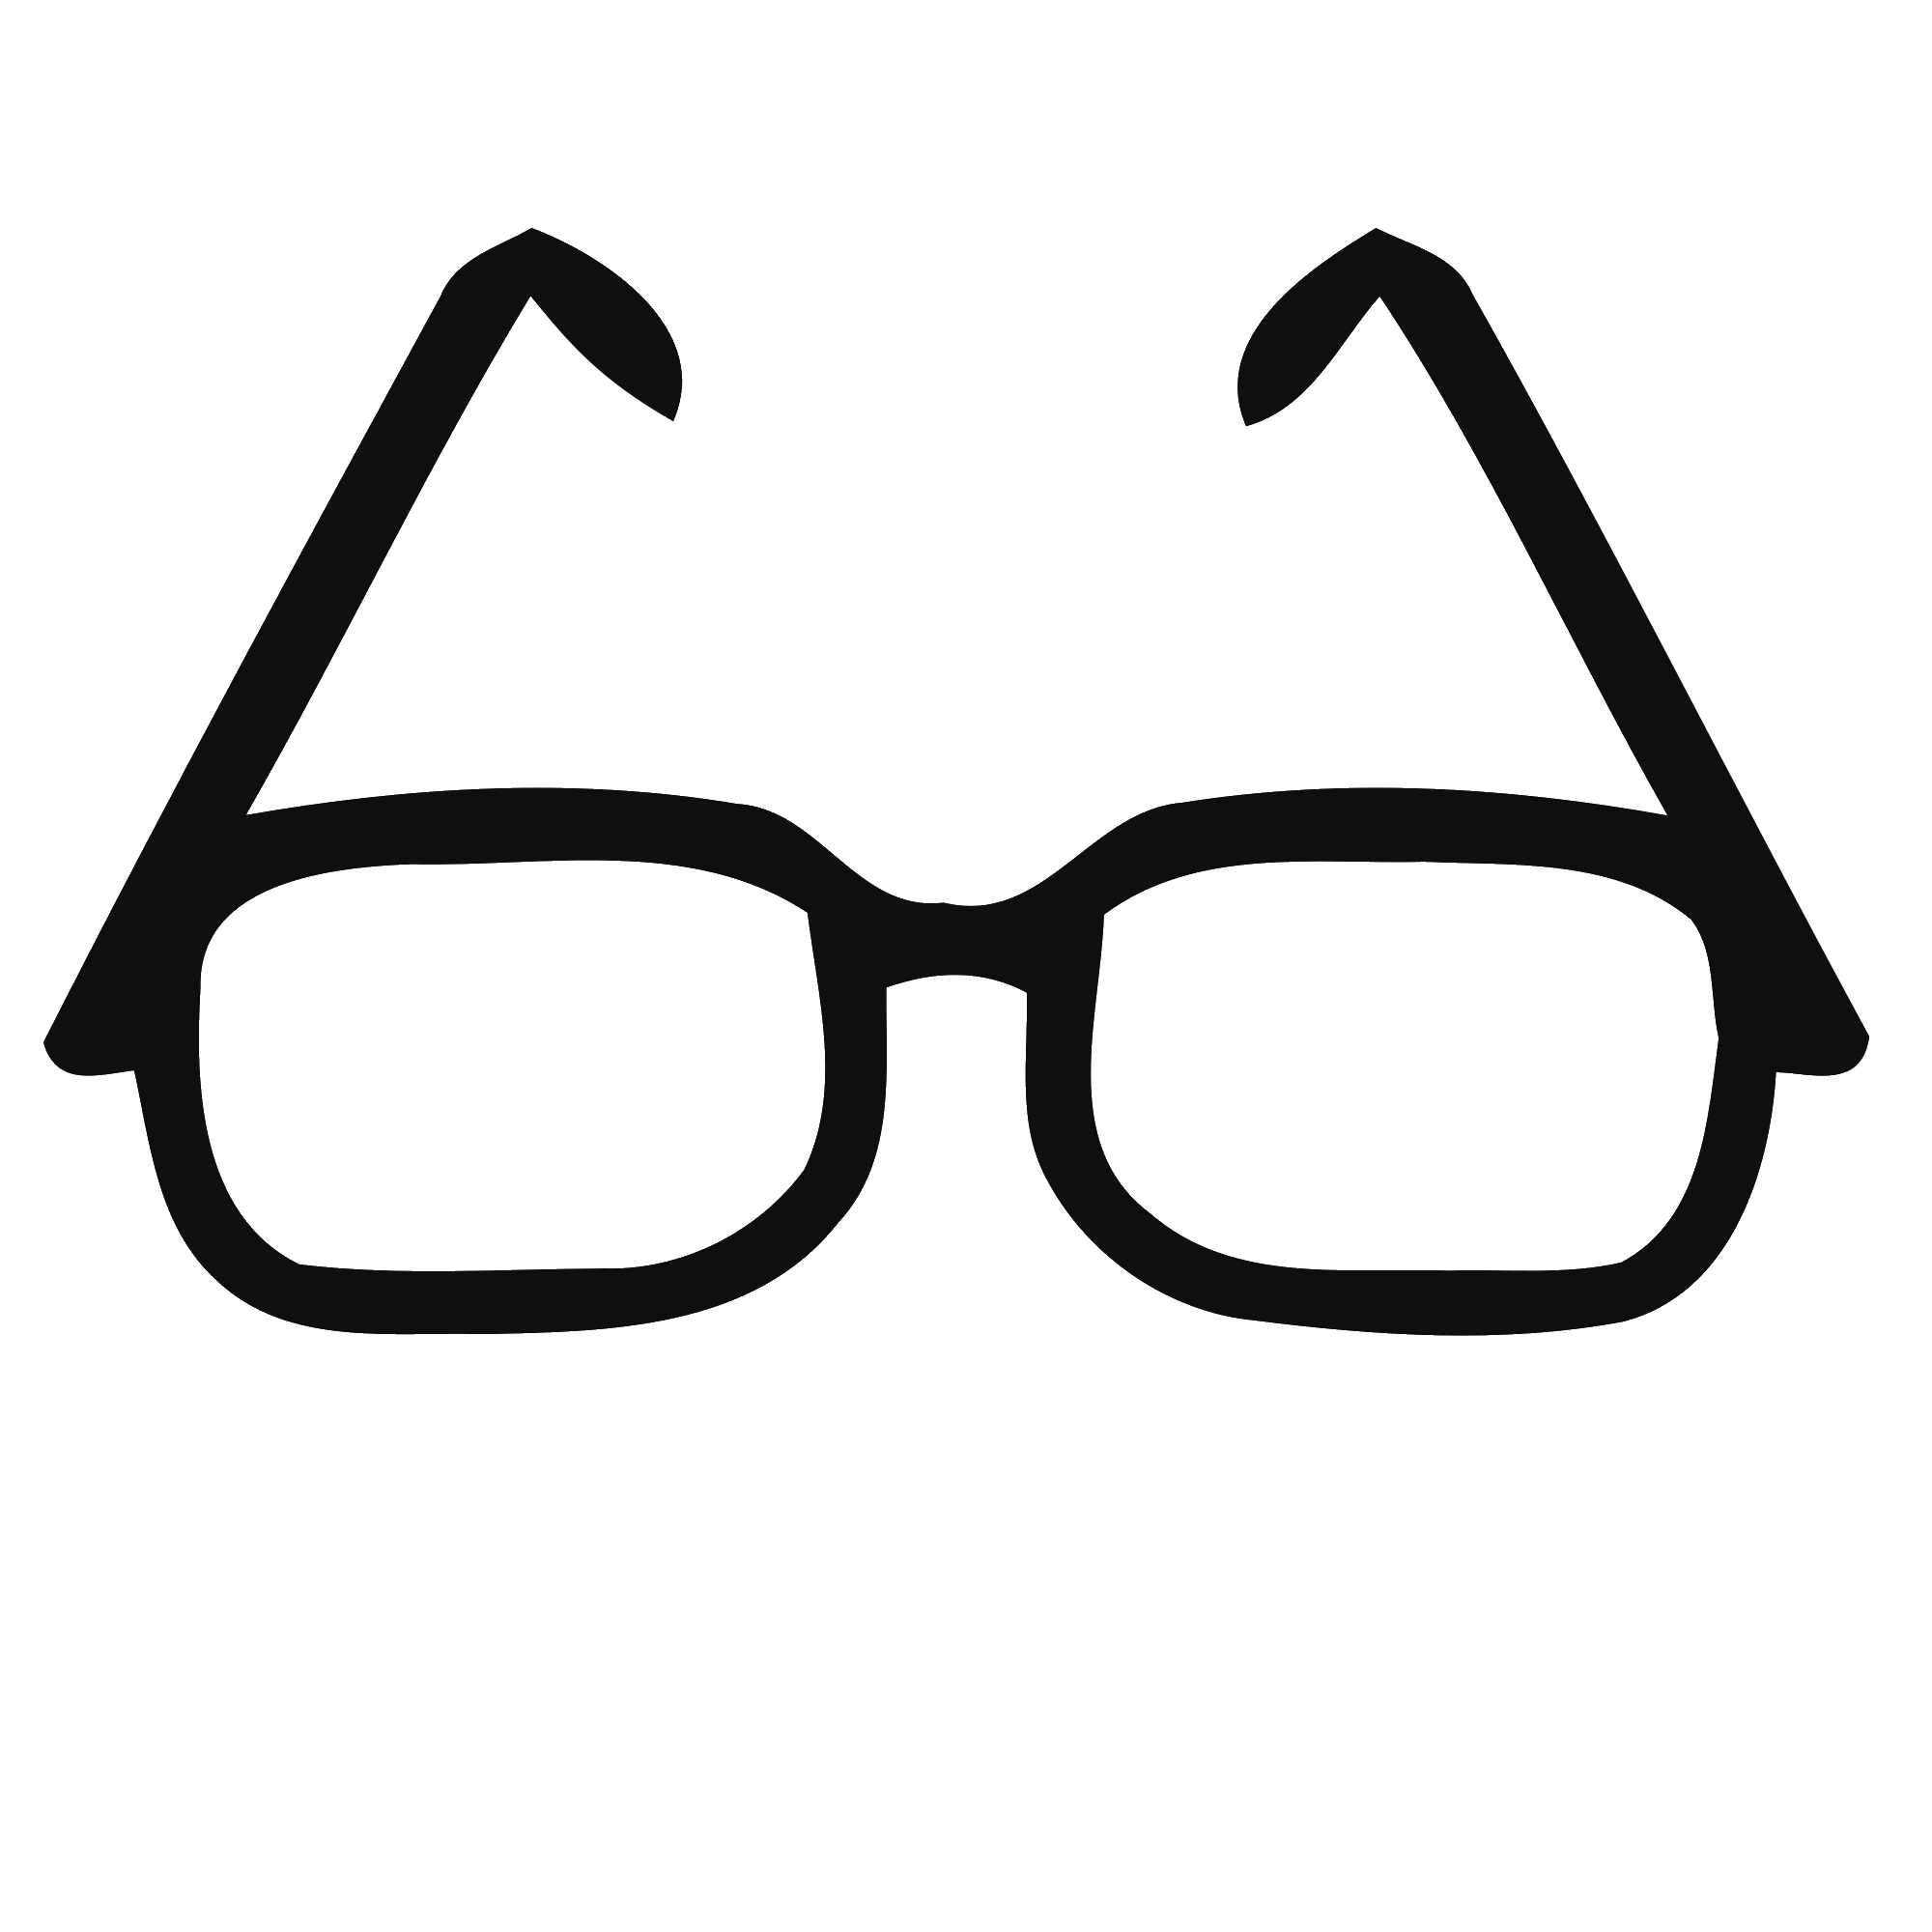 Transparent png file. Spectacles sg wikimedia commons